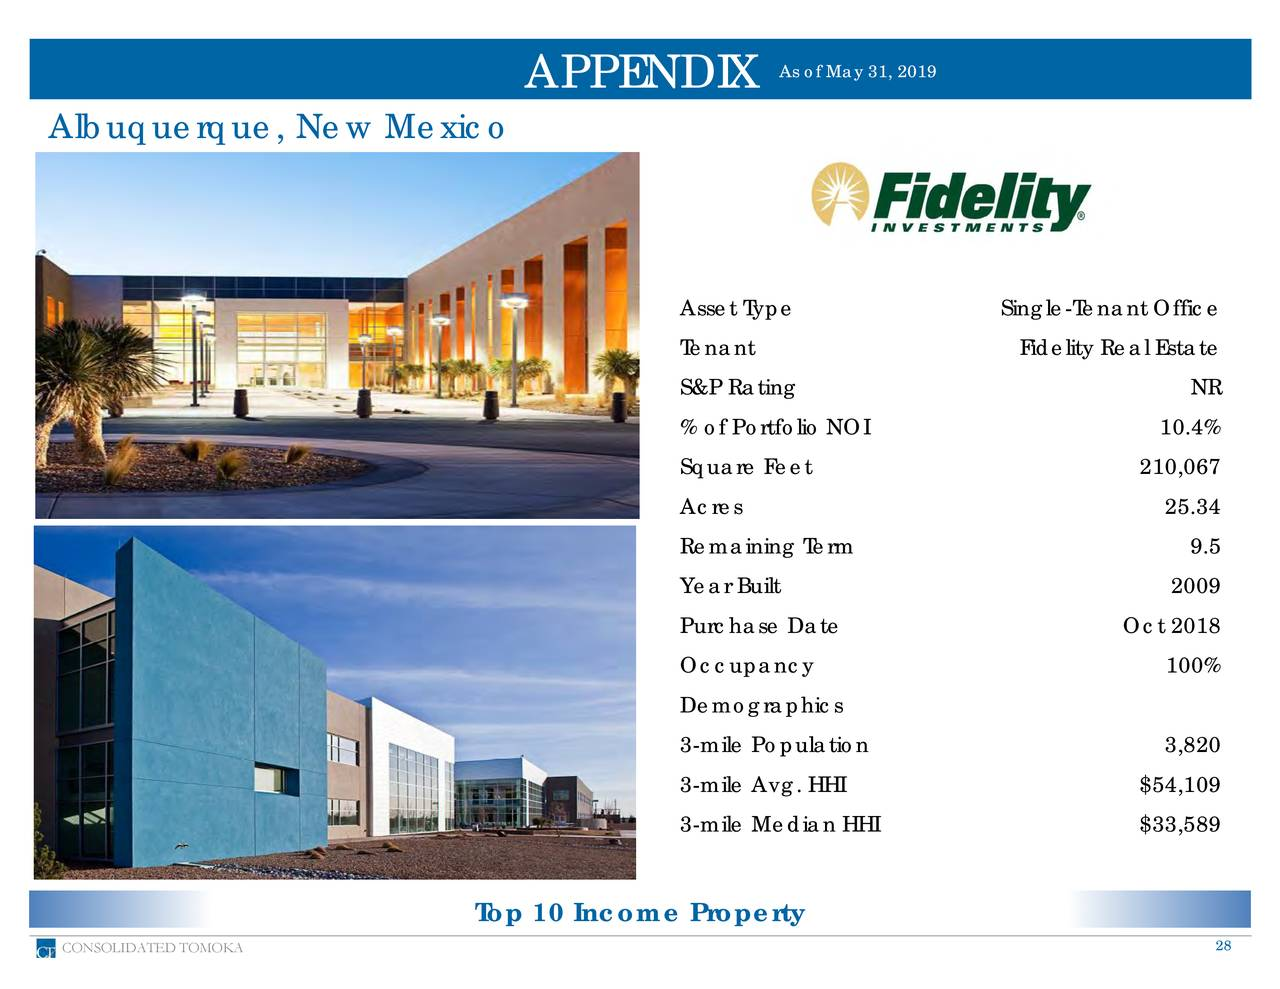 APPENDIX Albuquerque, New Mexico Asset Type Single-Tenant Office Tenant Fidelity Real Estate S&P Rating NR % of Portfolio NOI 10.4% Square Feet 210,067 Acres 25.34 Remaining Term 9.5 Year Built 2009 Purchase Date Oct 2018 Occupancy 100% Demographics 3-mile Population 3,820 3-mile Avg. HHI $54,109 3-mile Median HHI $33,589 Top 10 Income Property CONSOLIDATED TOMOKA 28